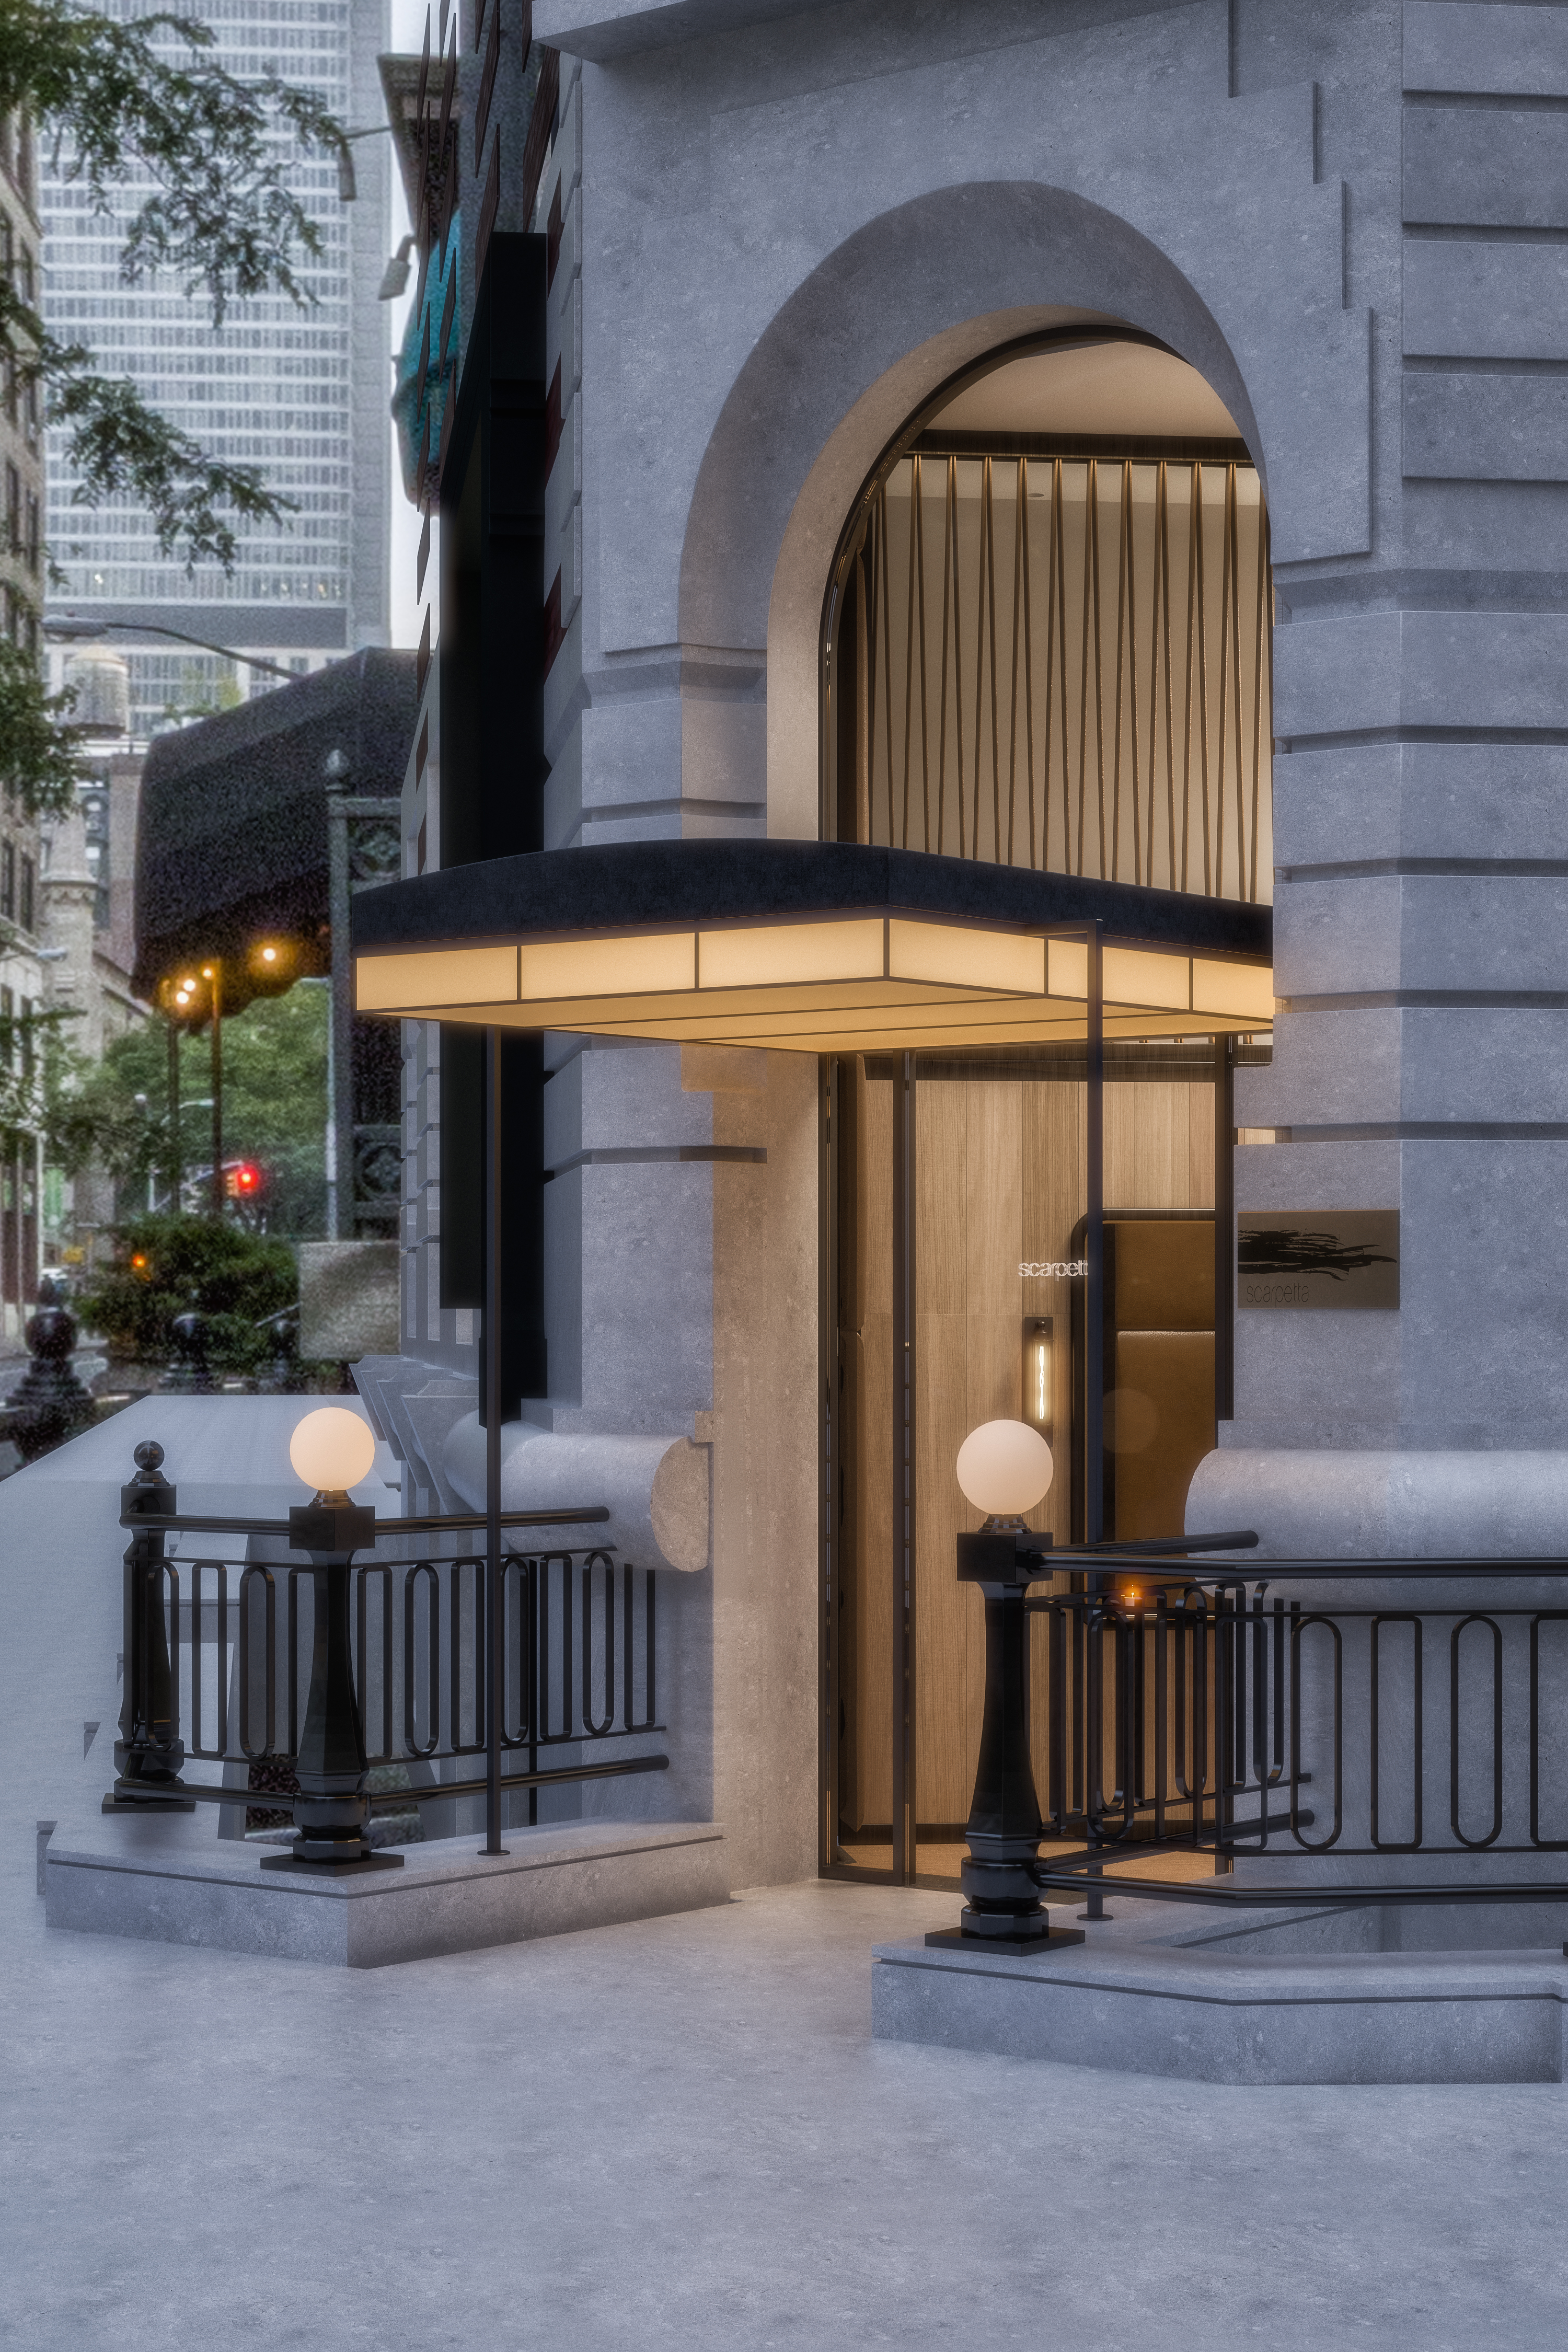 scarpetta nyc - entry canopy